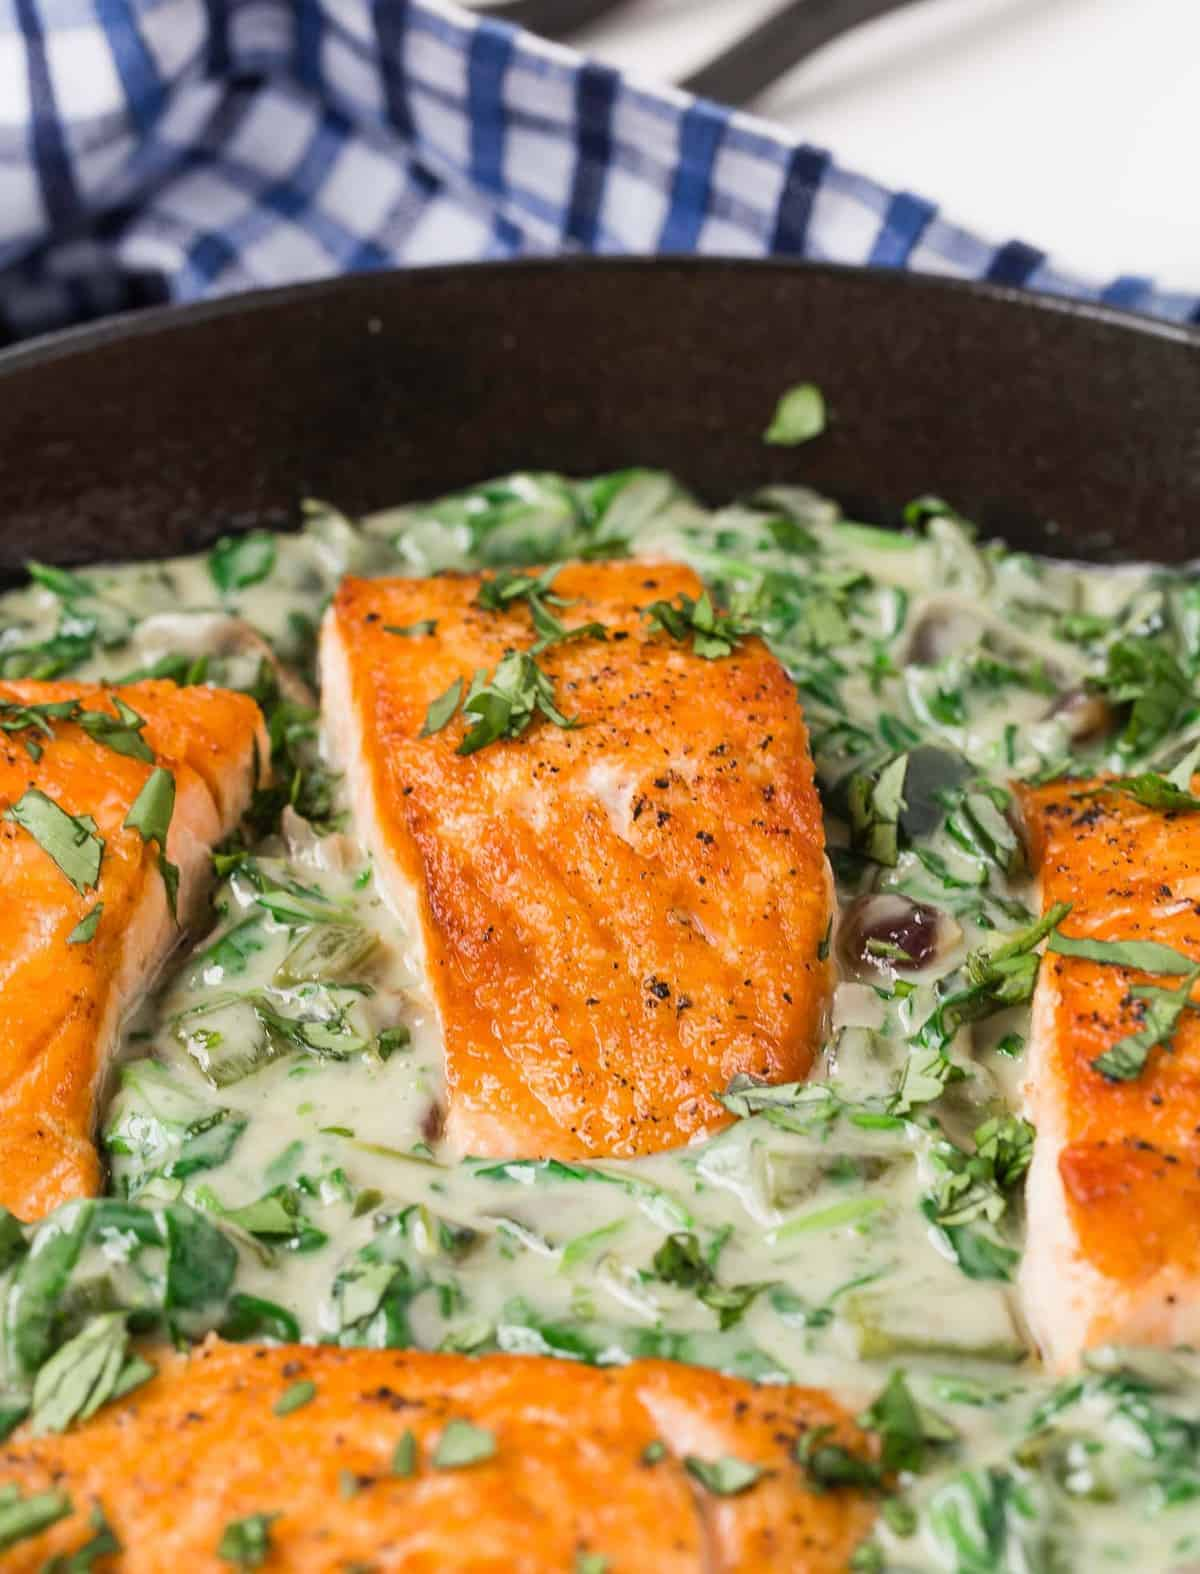 Four fillets of salmon in a green and white sauce.